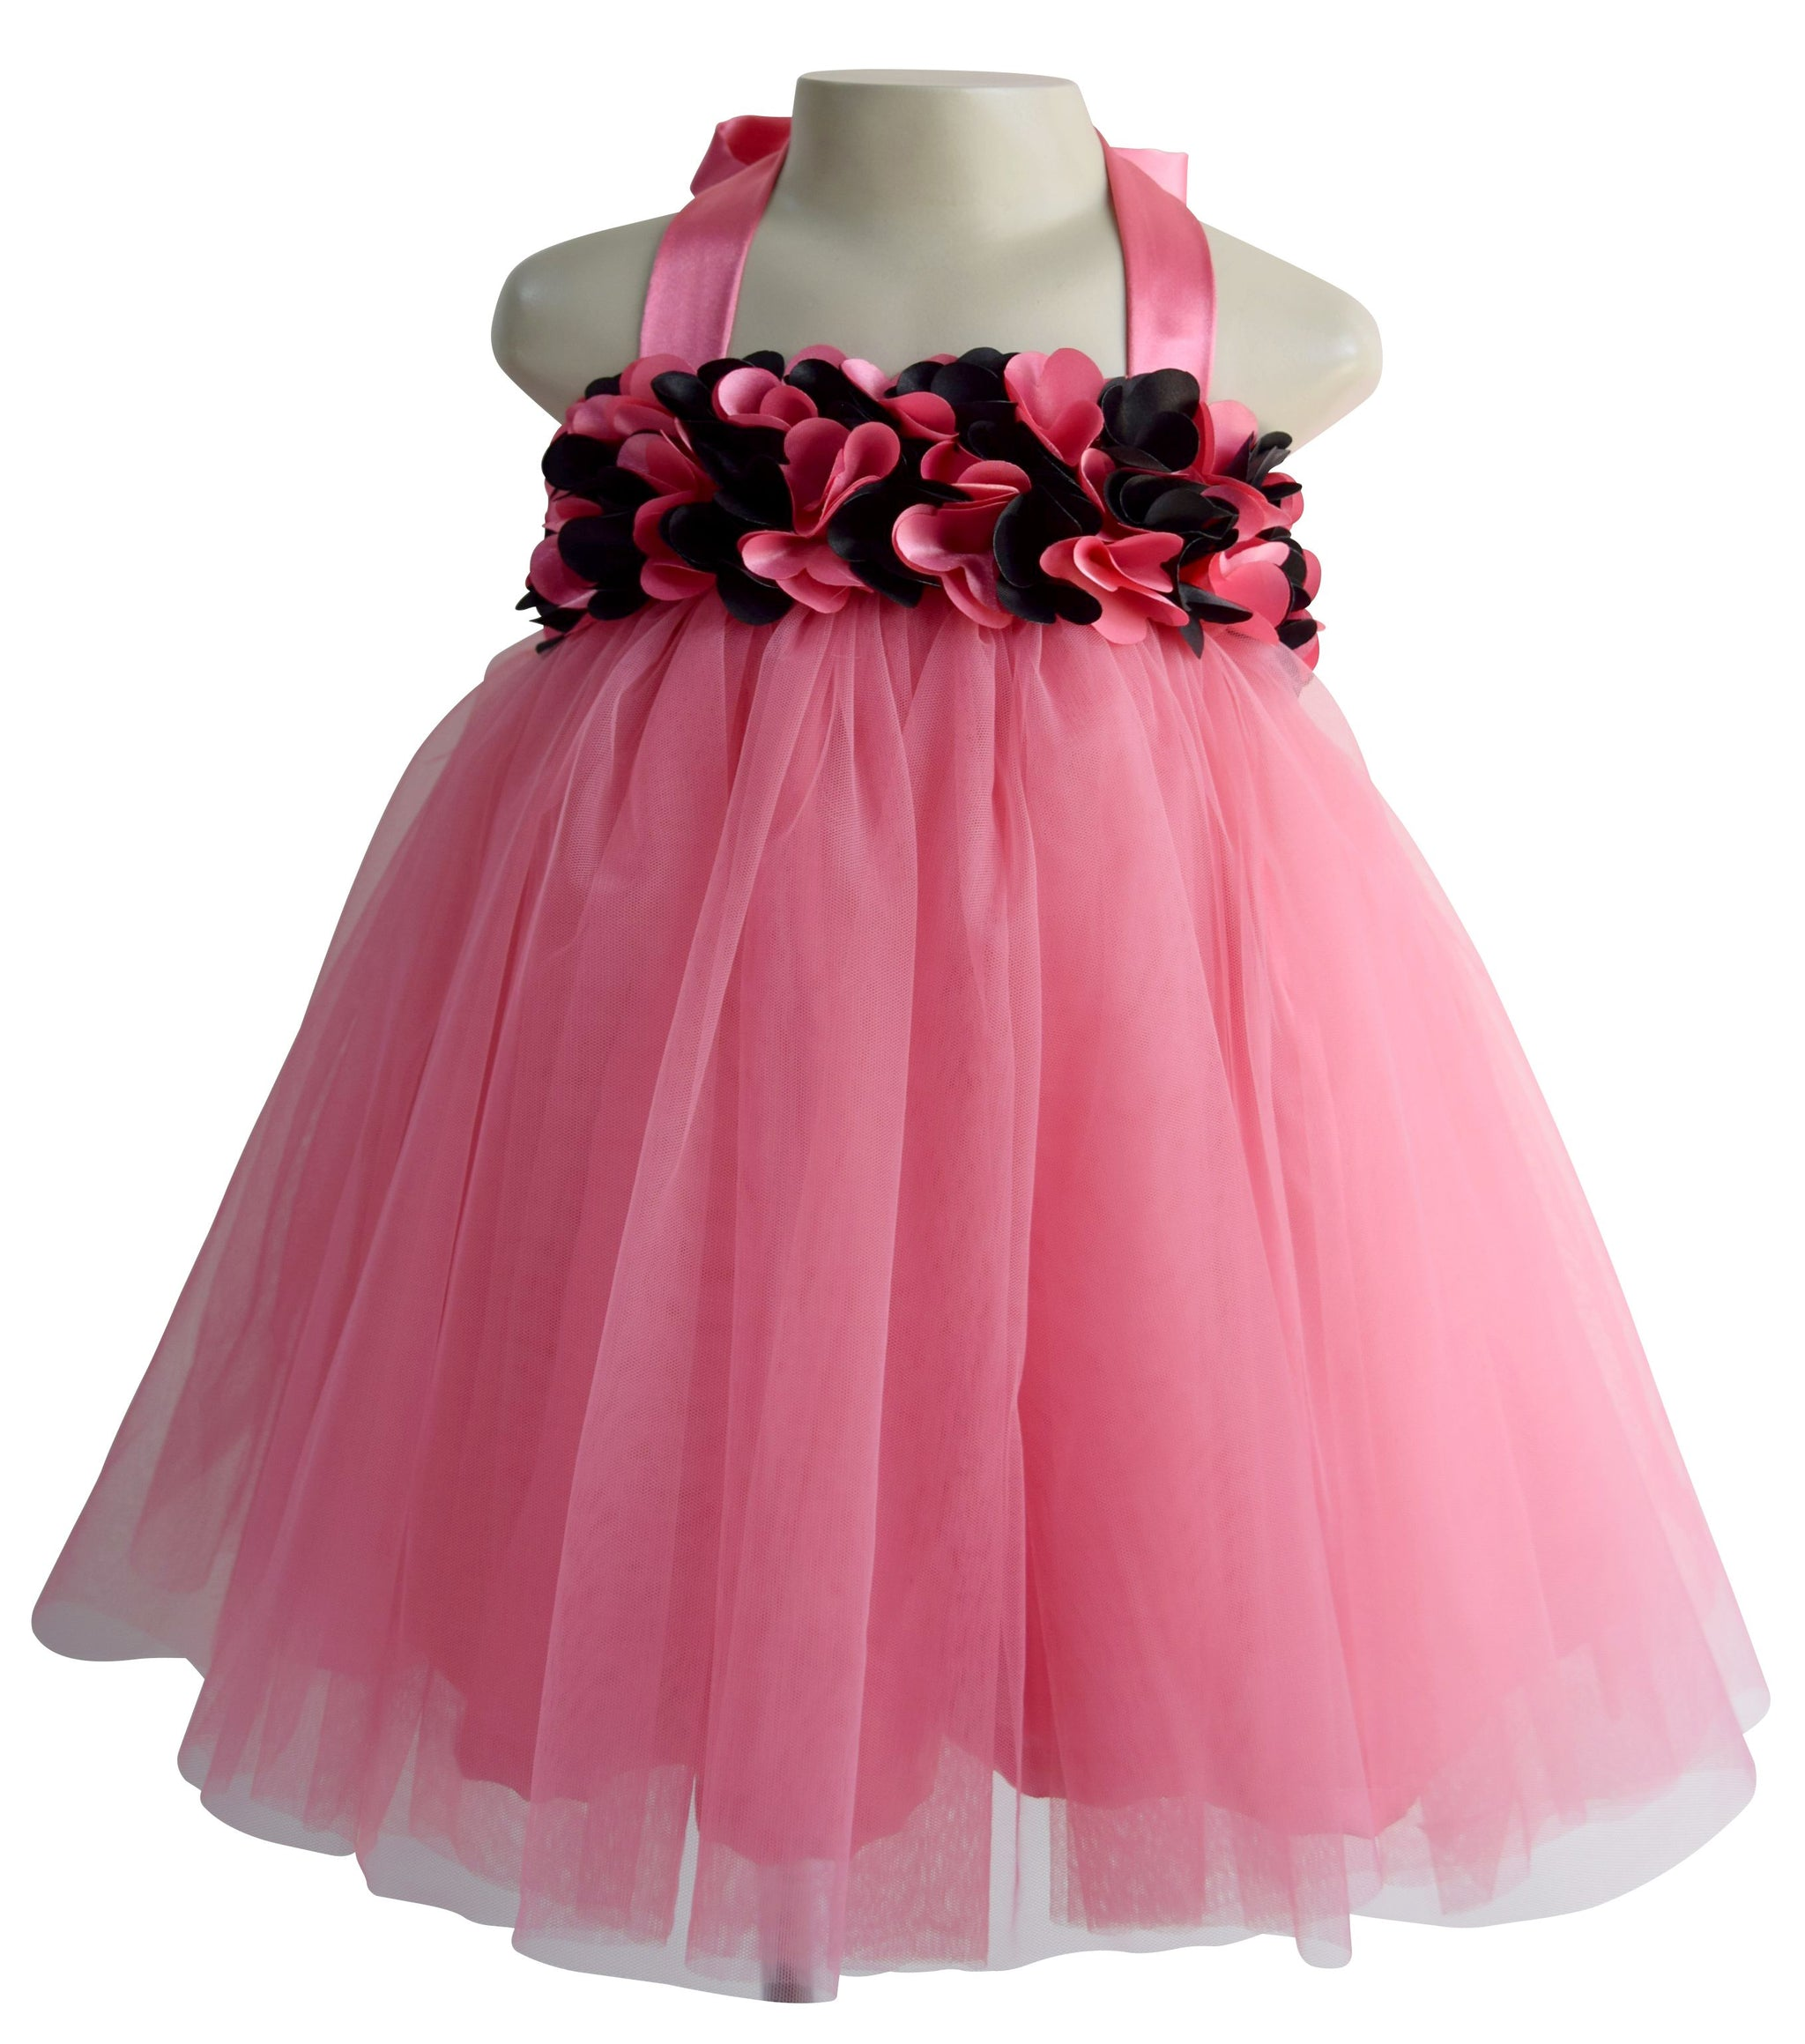 9b1d14051ae6a Buy Girls party wear dresses online|birthday dresses|dresses for girls